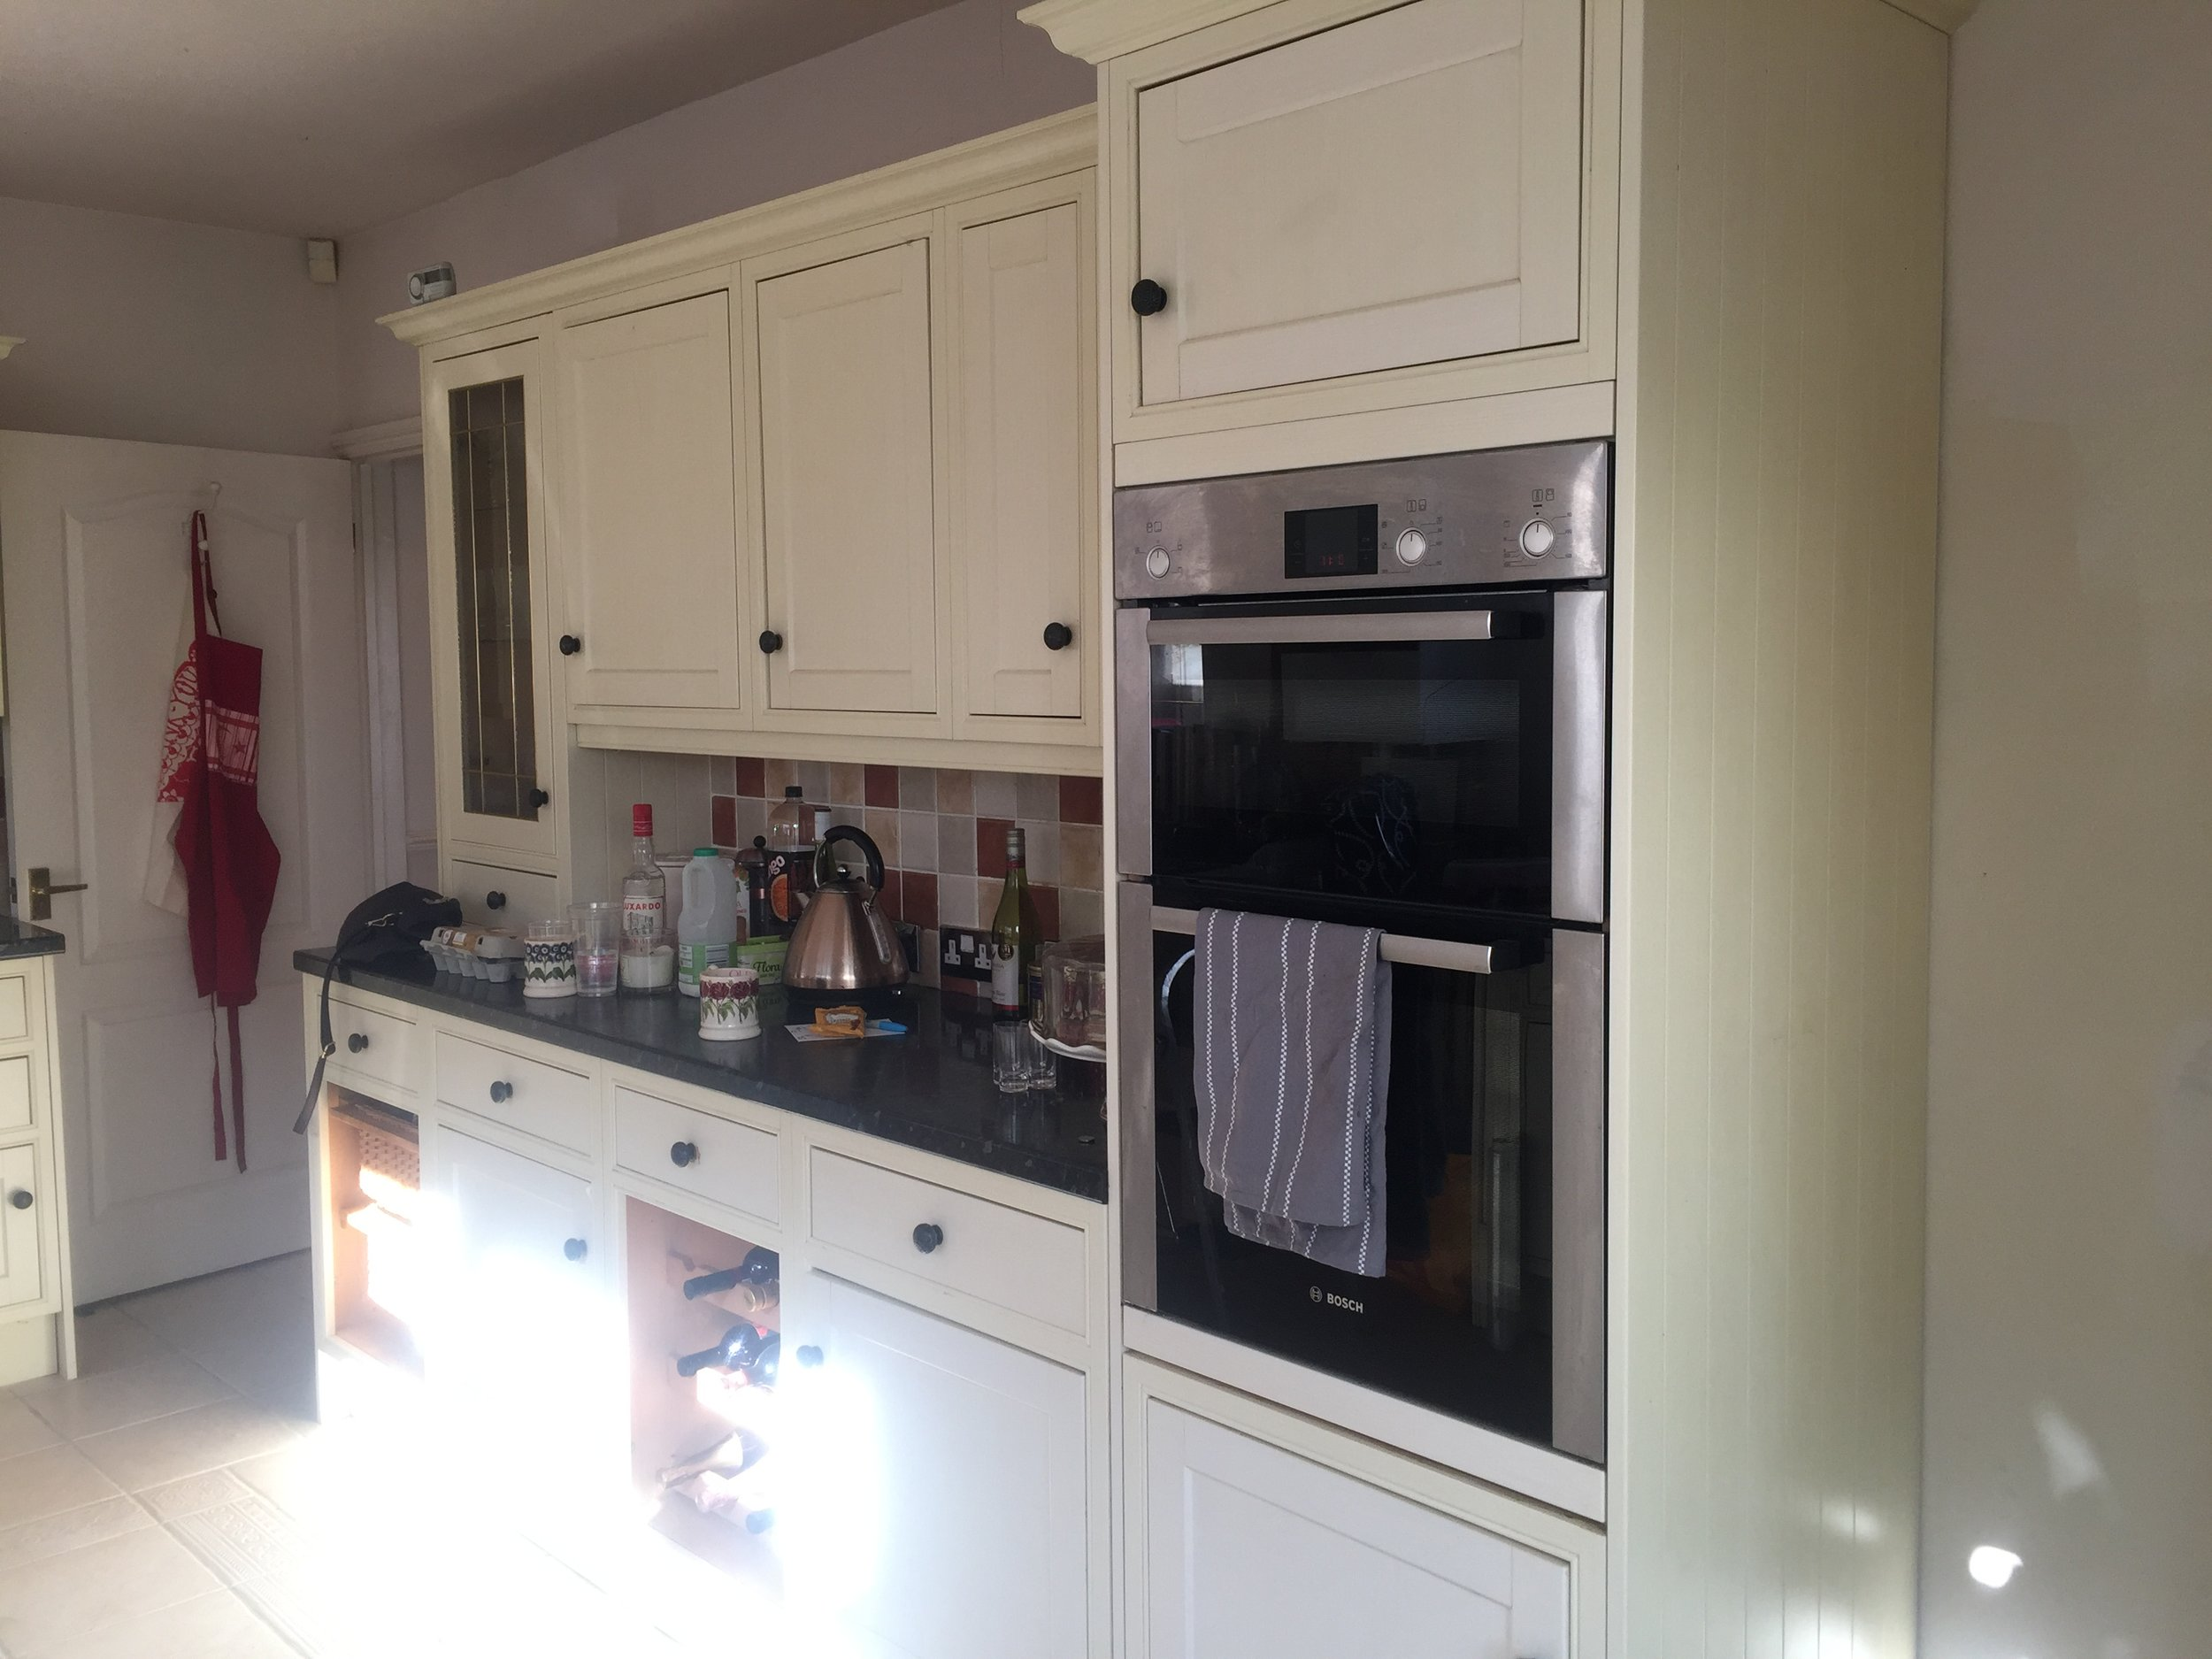 Before & After - Handpainted Kitchen with Fusion Mineral Paint